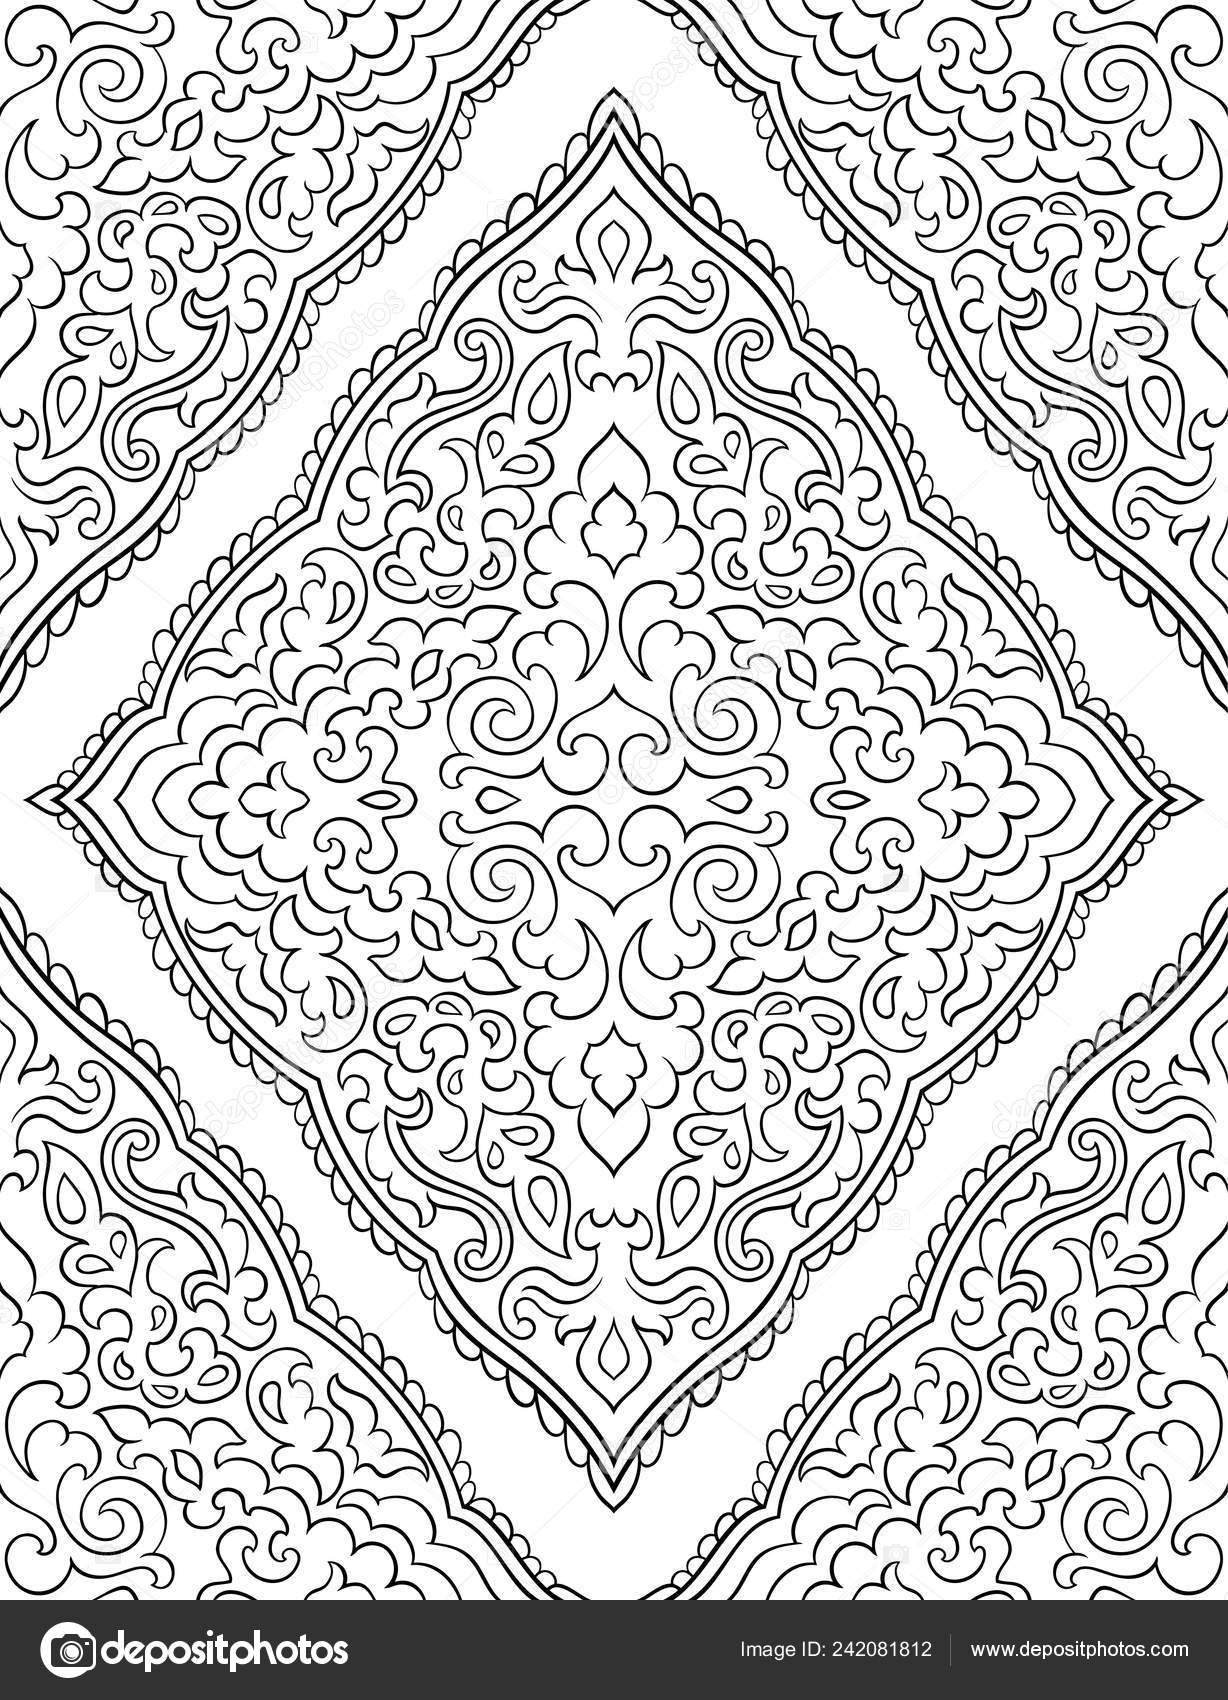 Abstract Pattern Damask Seamless Filigree Ornament Black White Template Wallpaper Stock Vector C Matorinni 242081812